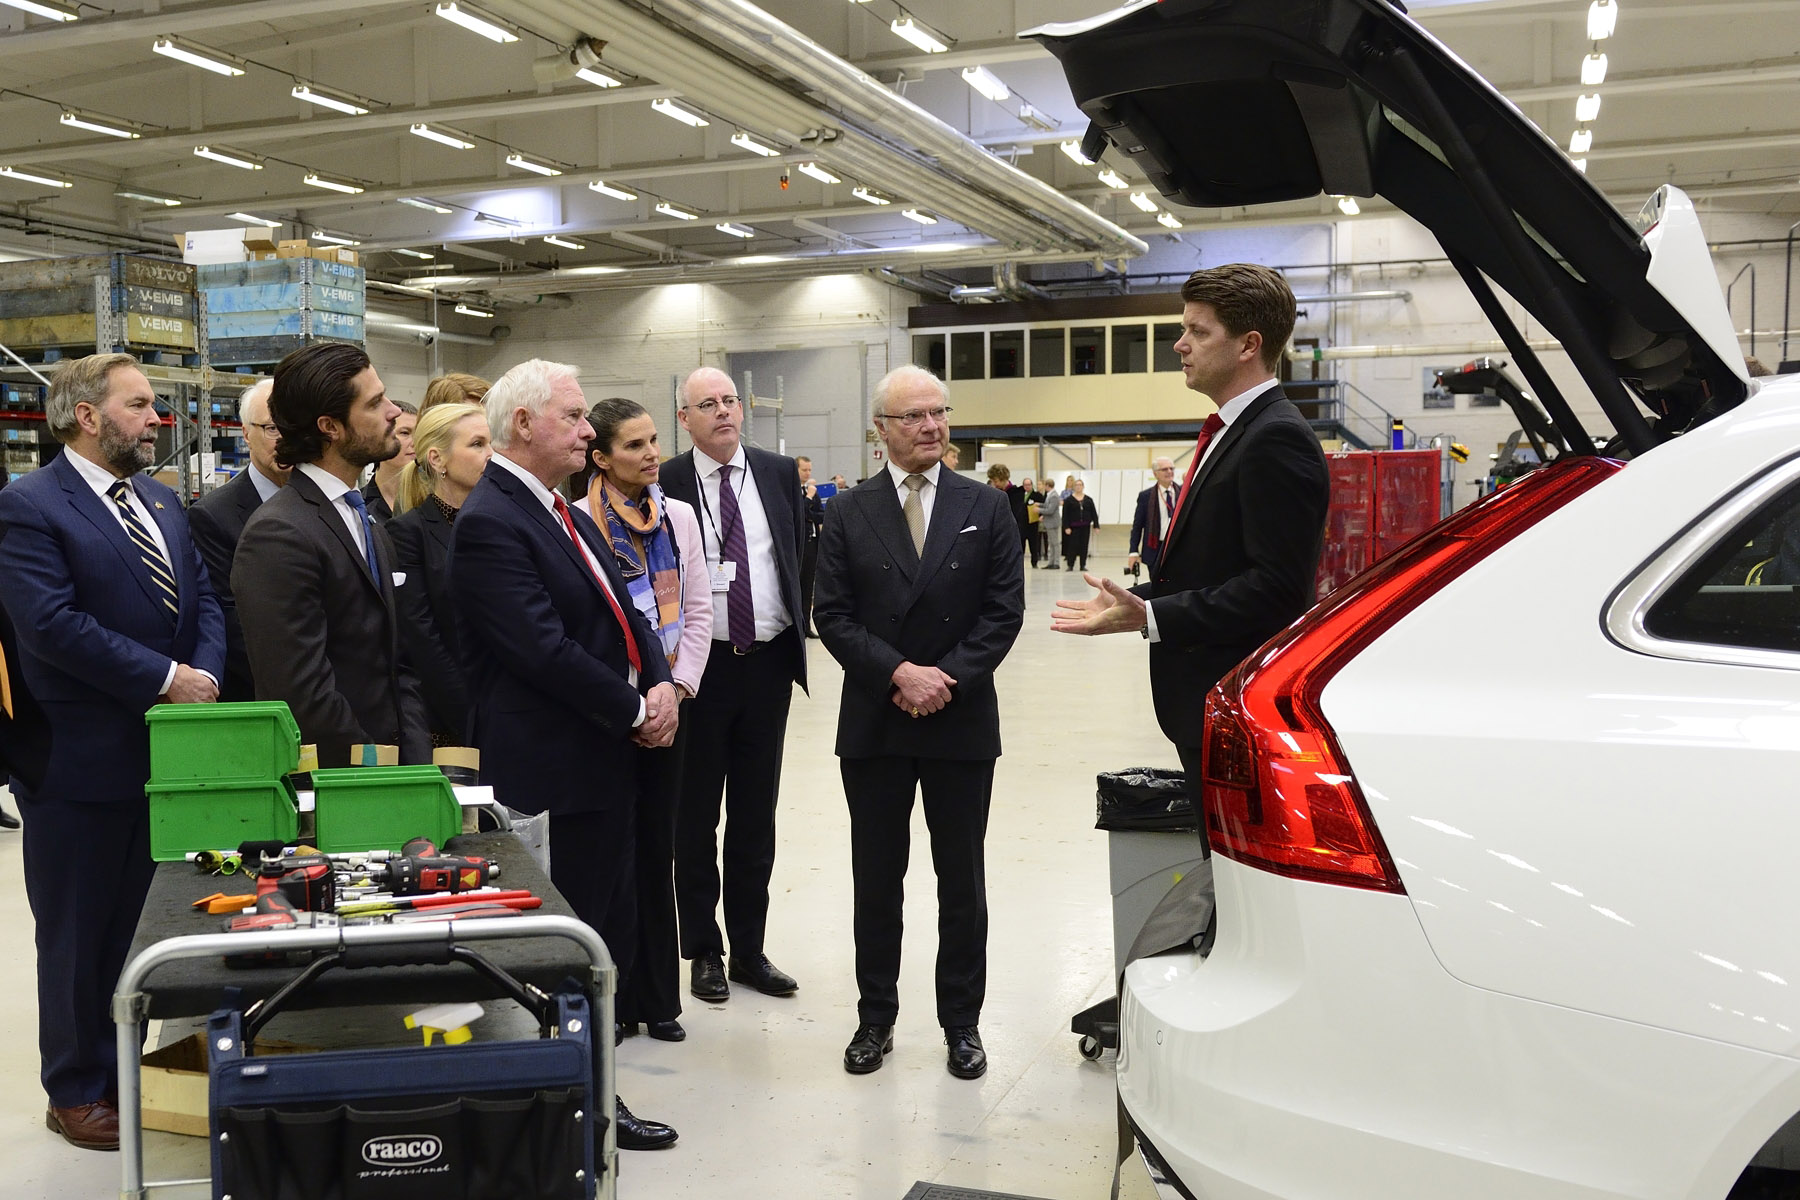 After the working luncheon, His Excellency and Canadian delegates met with Wesport AB company representatives to learn how the Canadian subsidiary integrates its alternative fuel technology in Volvo cars, allowing them to run on the climate-friendly fuel bio-methane.